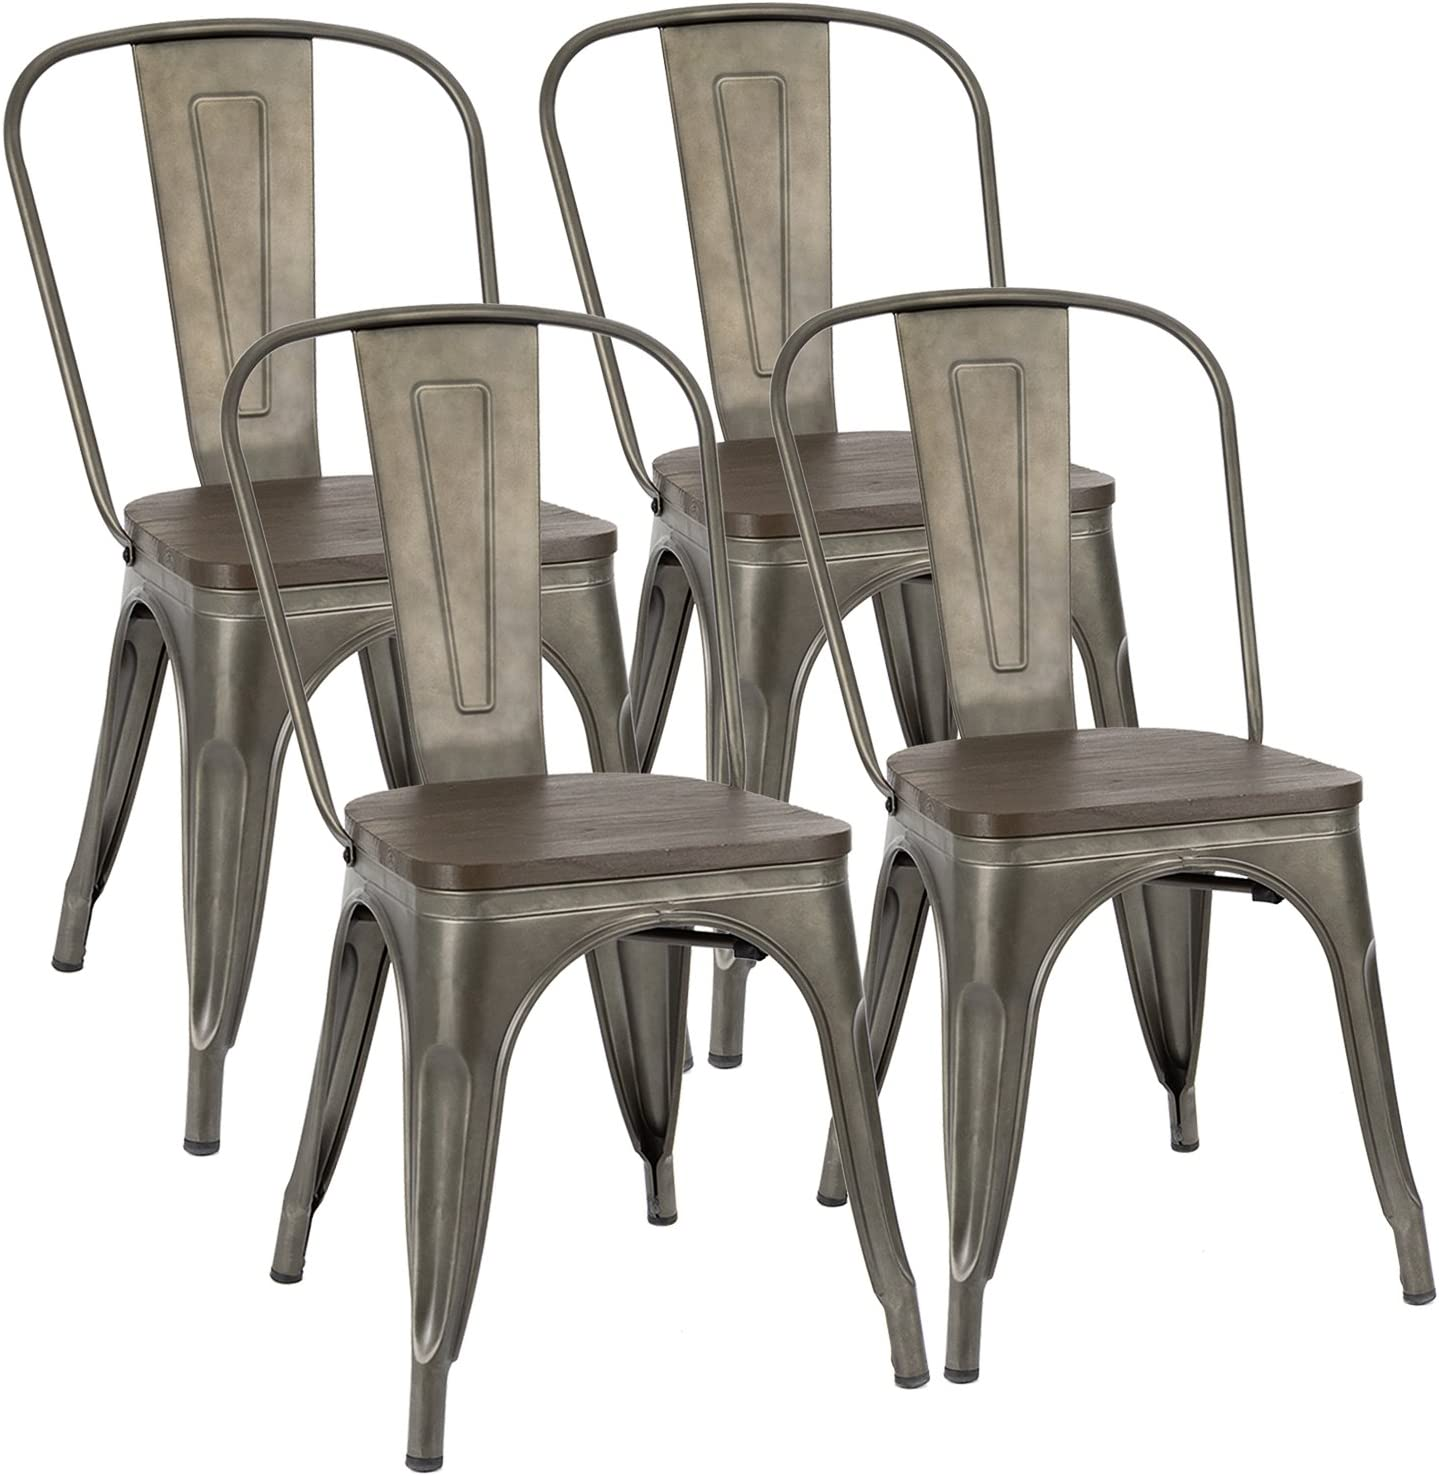 Furmax Metal Dining Chair Indoor-Outdoor Use Stackable Chic Dining Bistro Cafe Side Metal Chairs Set of 4 Gun